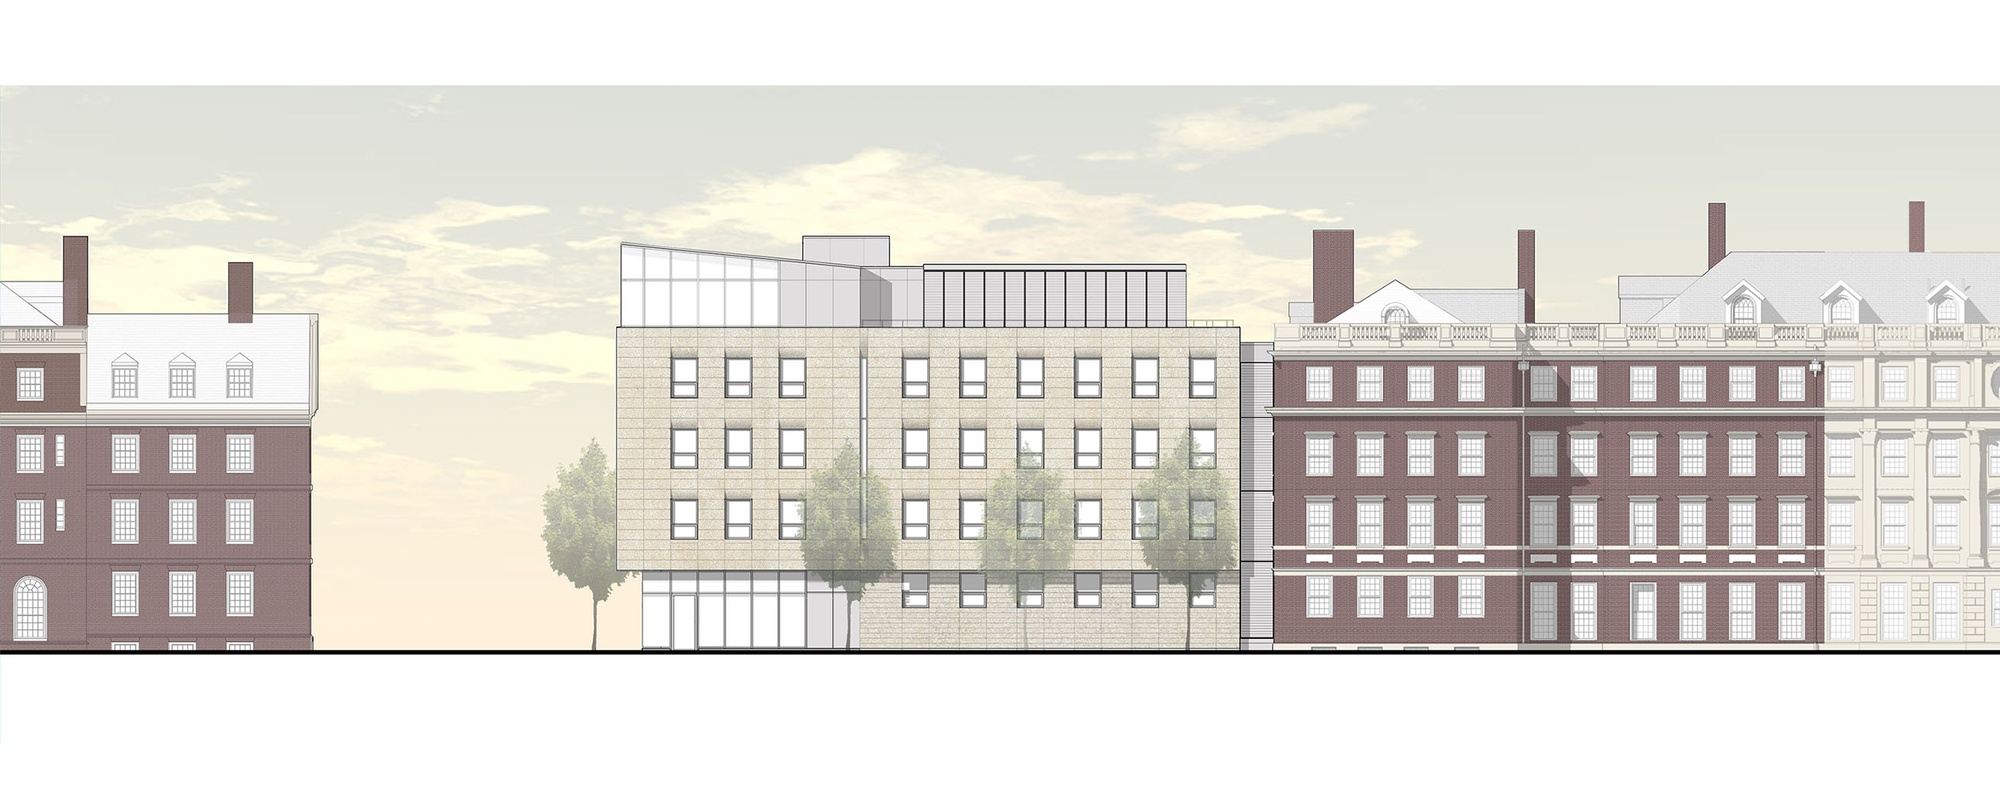 Gore Hall, part of Winthrop House, will undergo an addition in 2016-2017 as part of the College's House Renewal program. Dean of the College Rakesh Khurana said that an ultimate goal of house renewal is to phase out student overflow housing on DeWolfe Street.